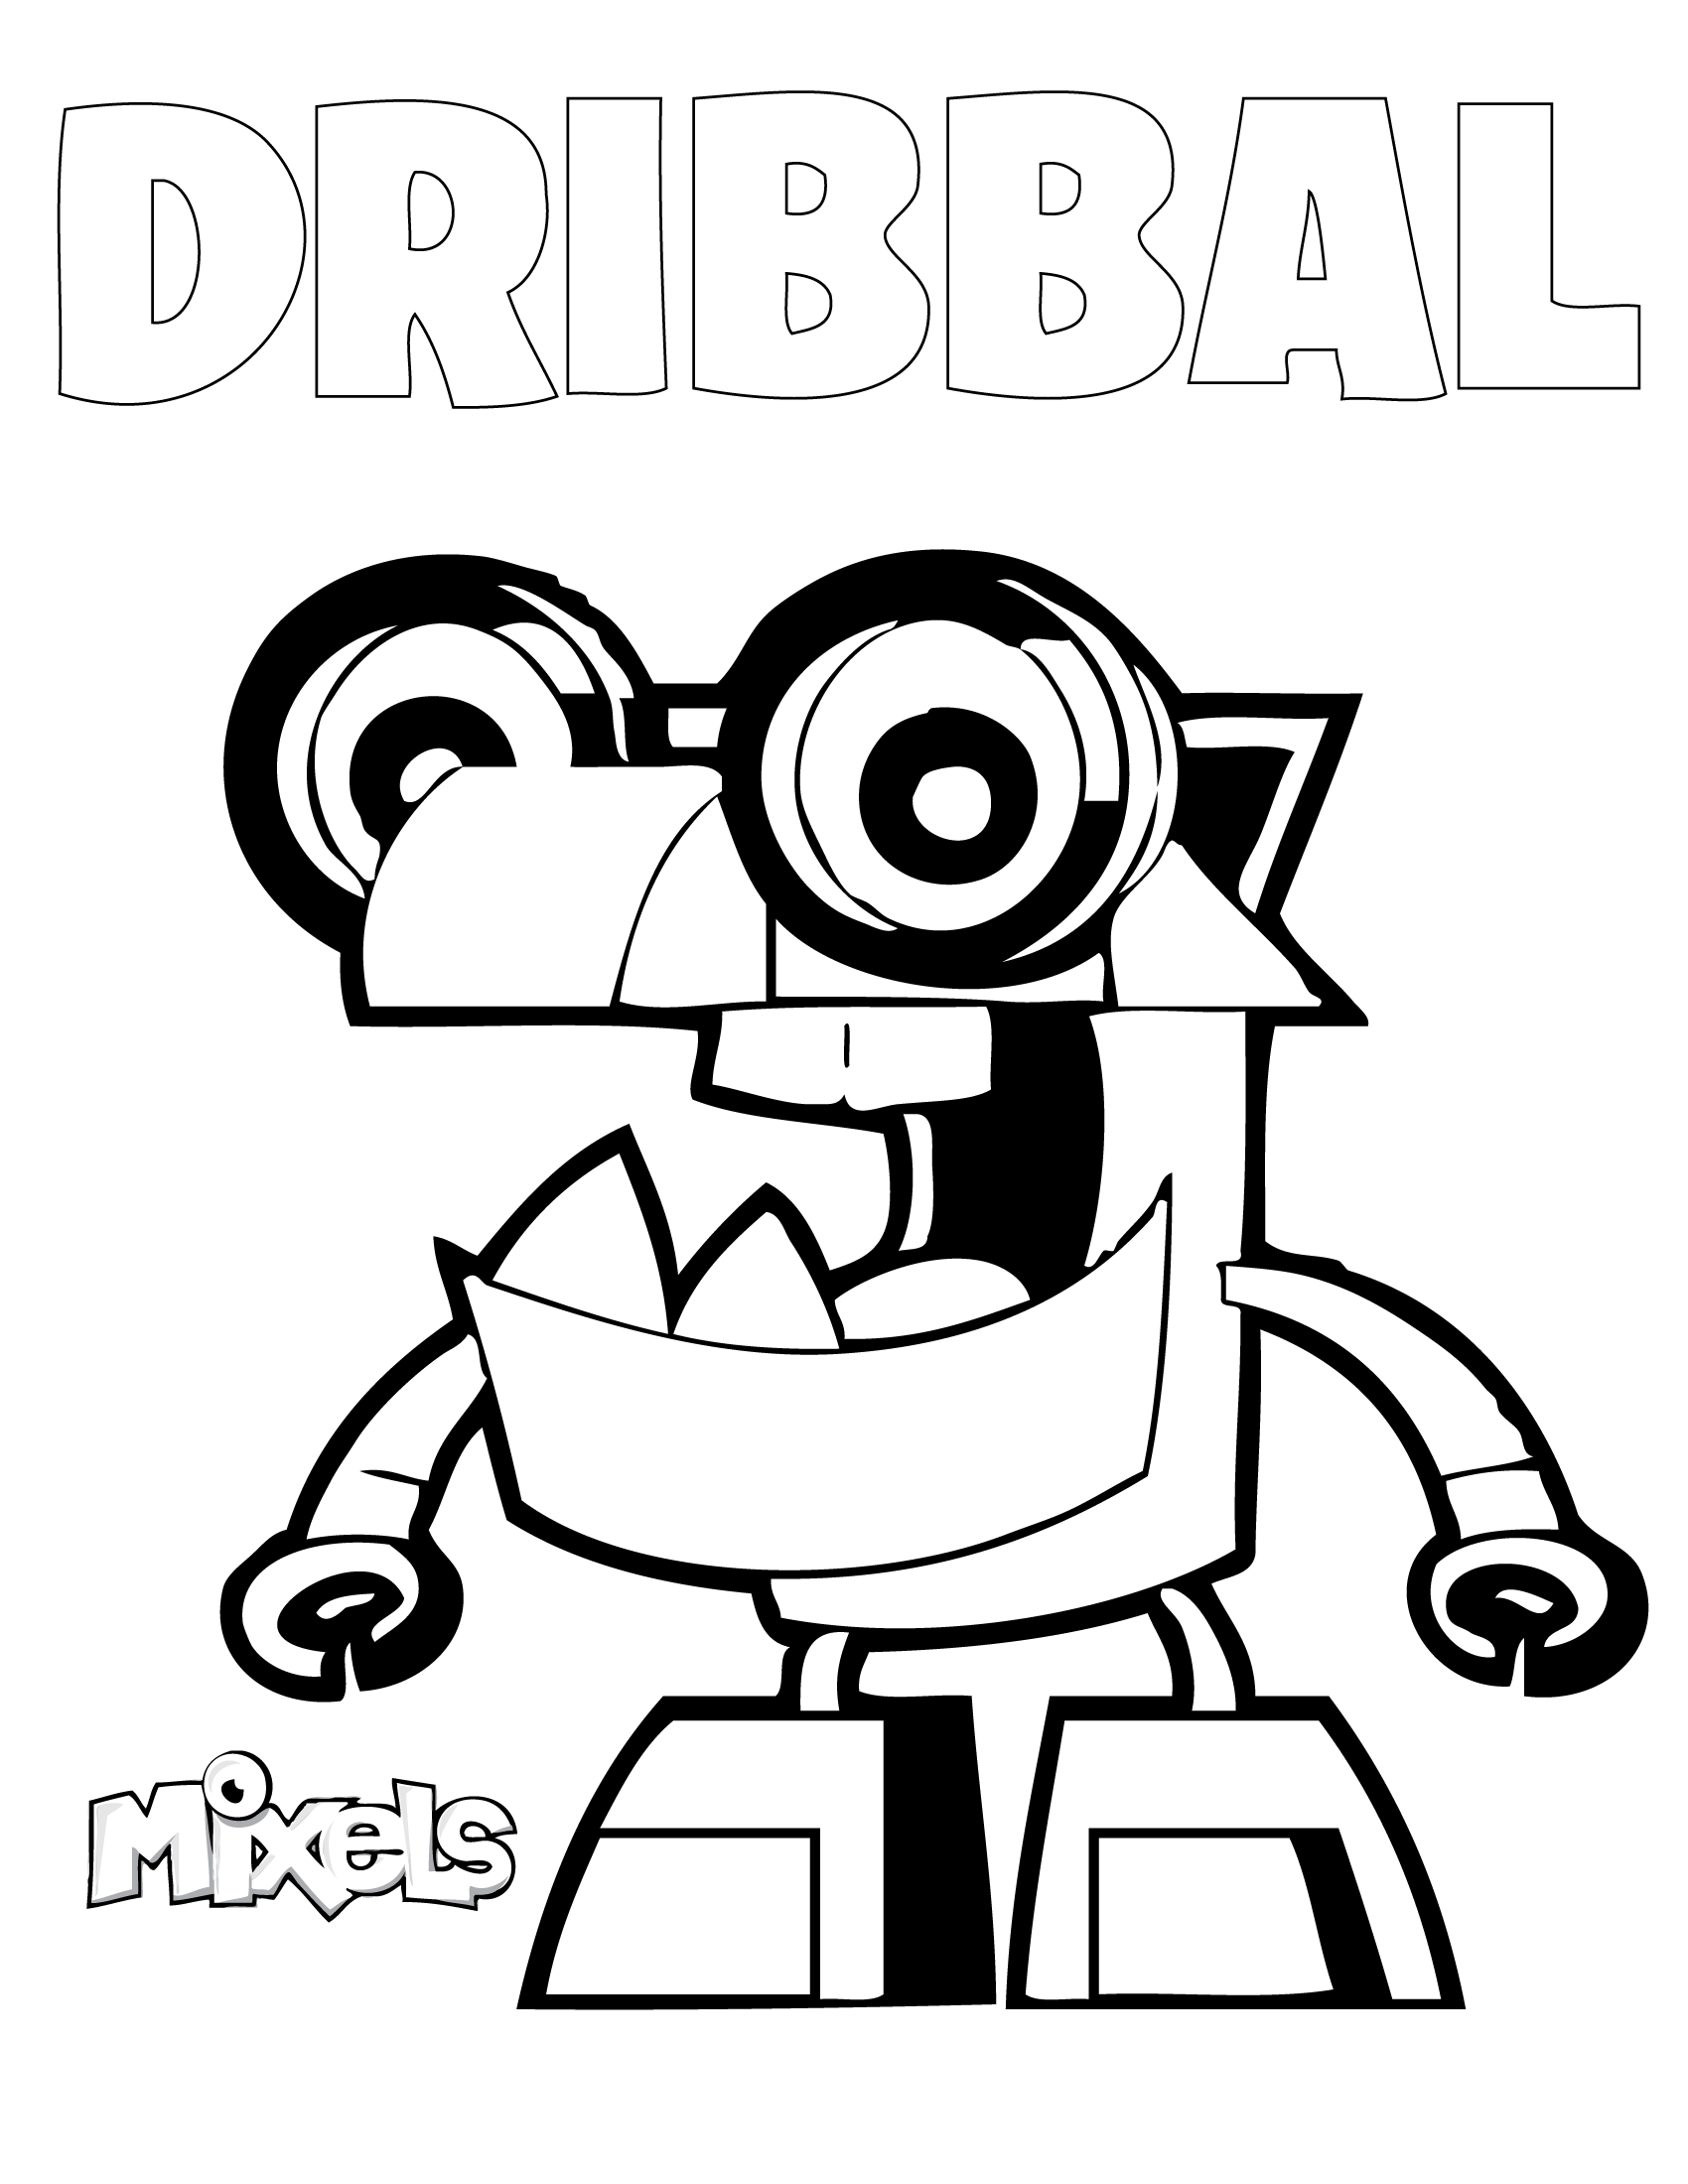 Mixels Coloring Pages Erics Activity Pages Page 2